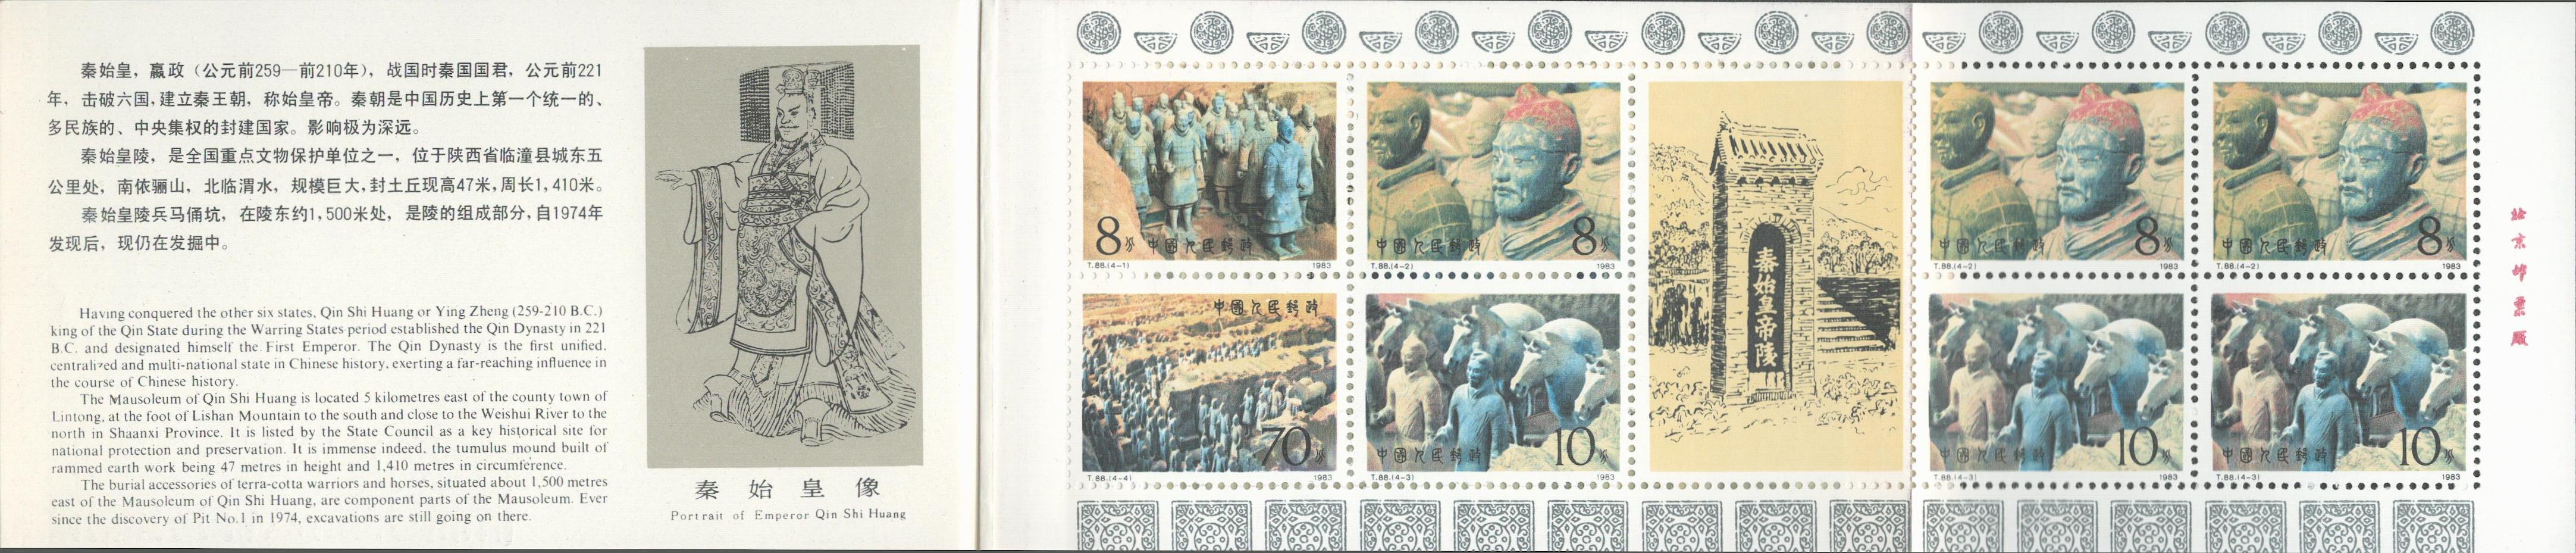 Chinese stamp collection. Includes 1983 Terracotta figures in presentation pack. Includes 3256,